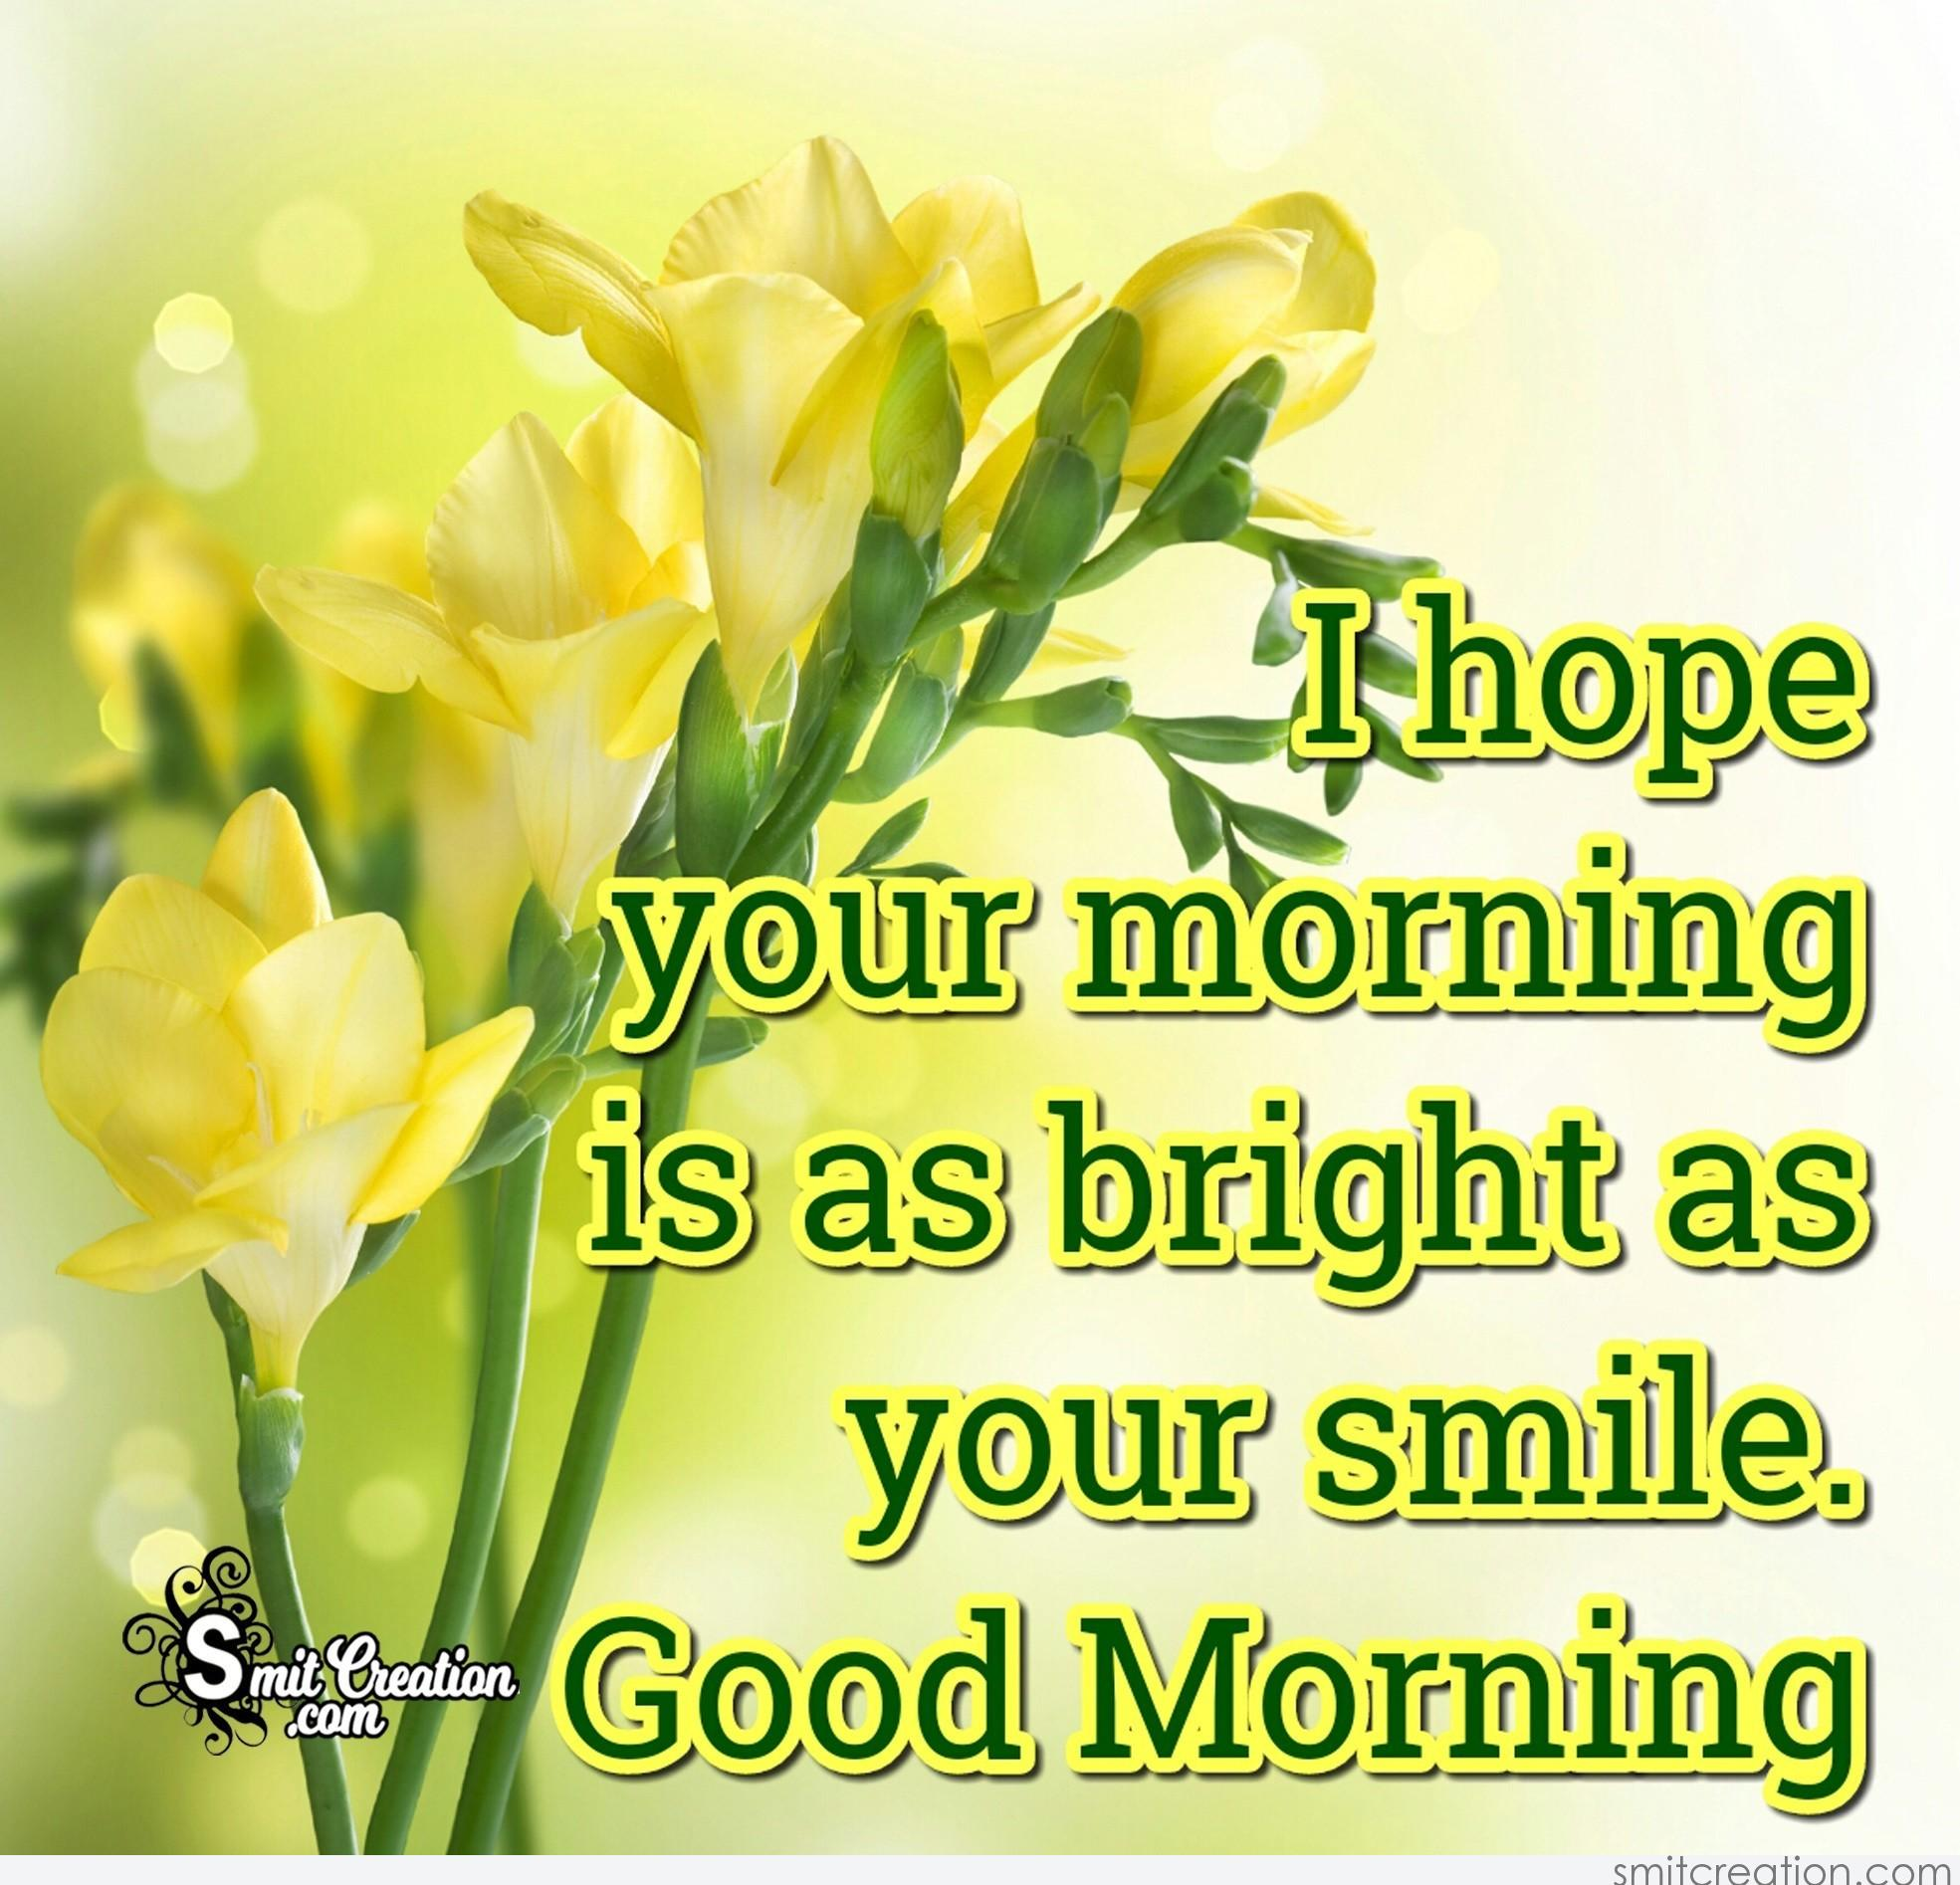 Good Morning Smile Pictures And Graphics Smitcreationcom